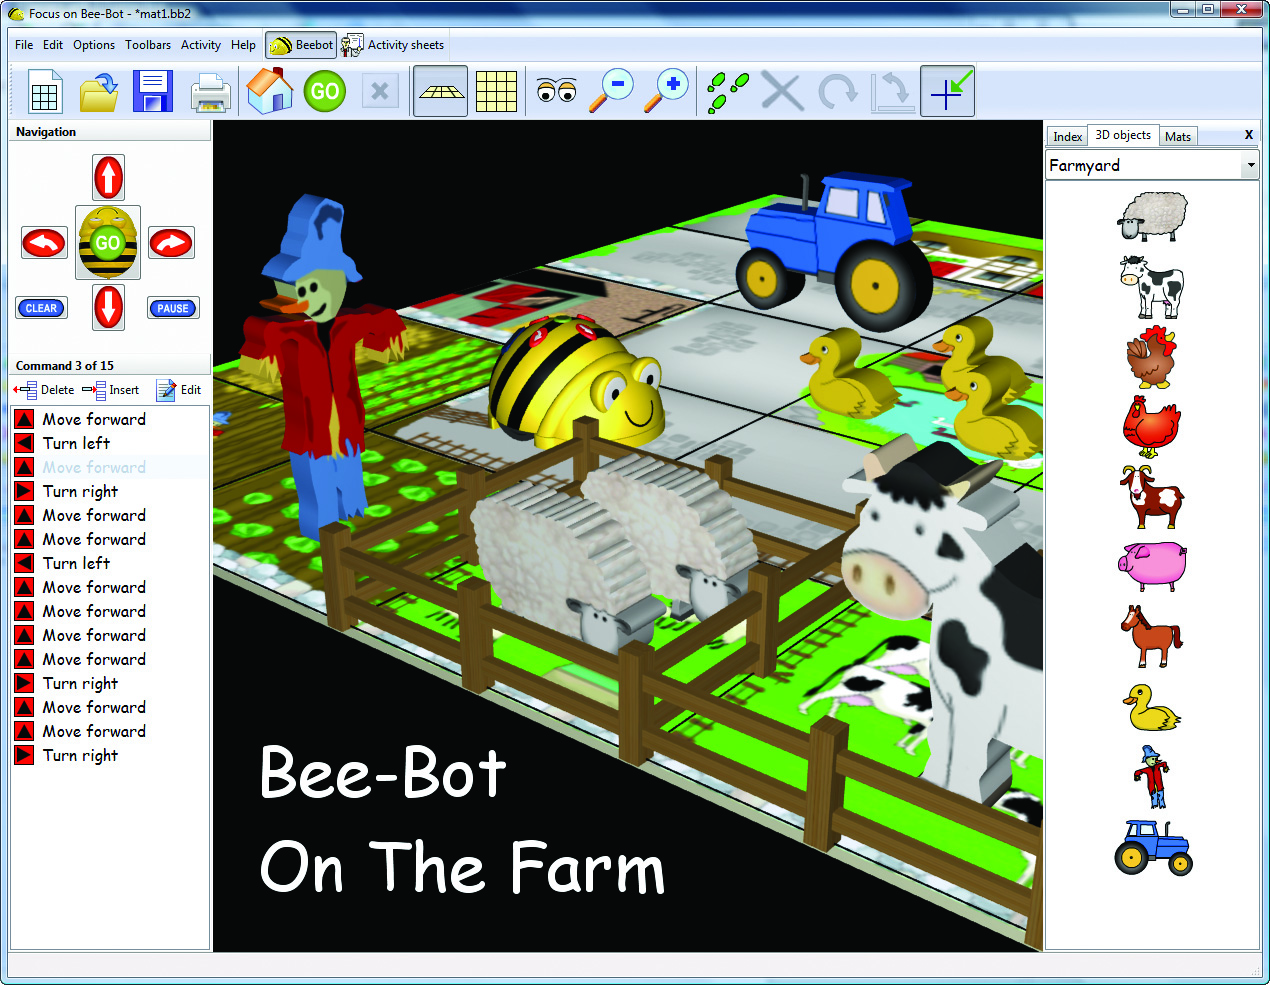 Bee-Bot 2 Farmyard